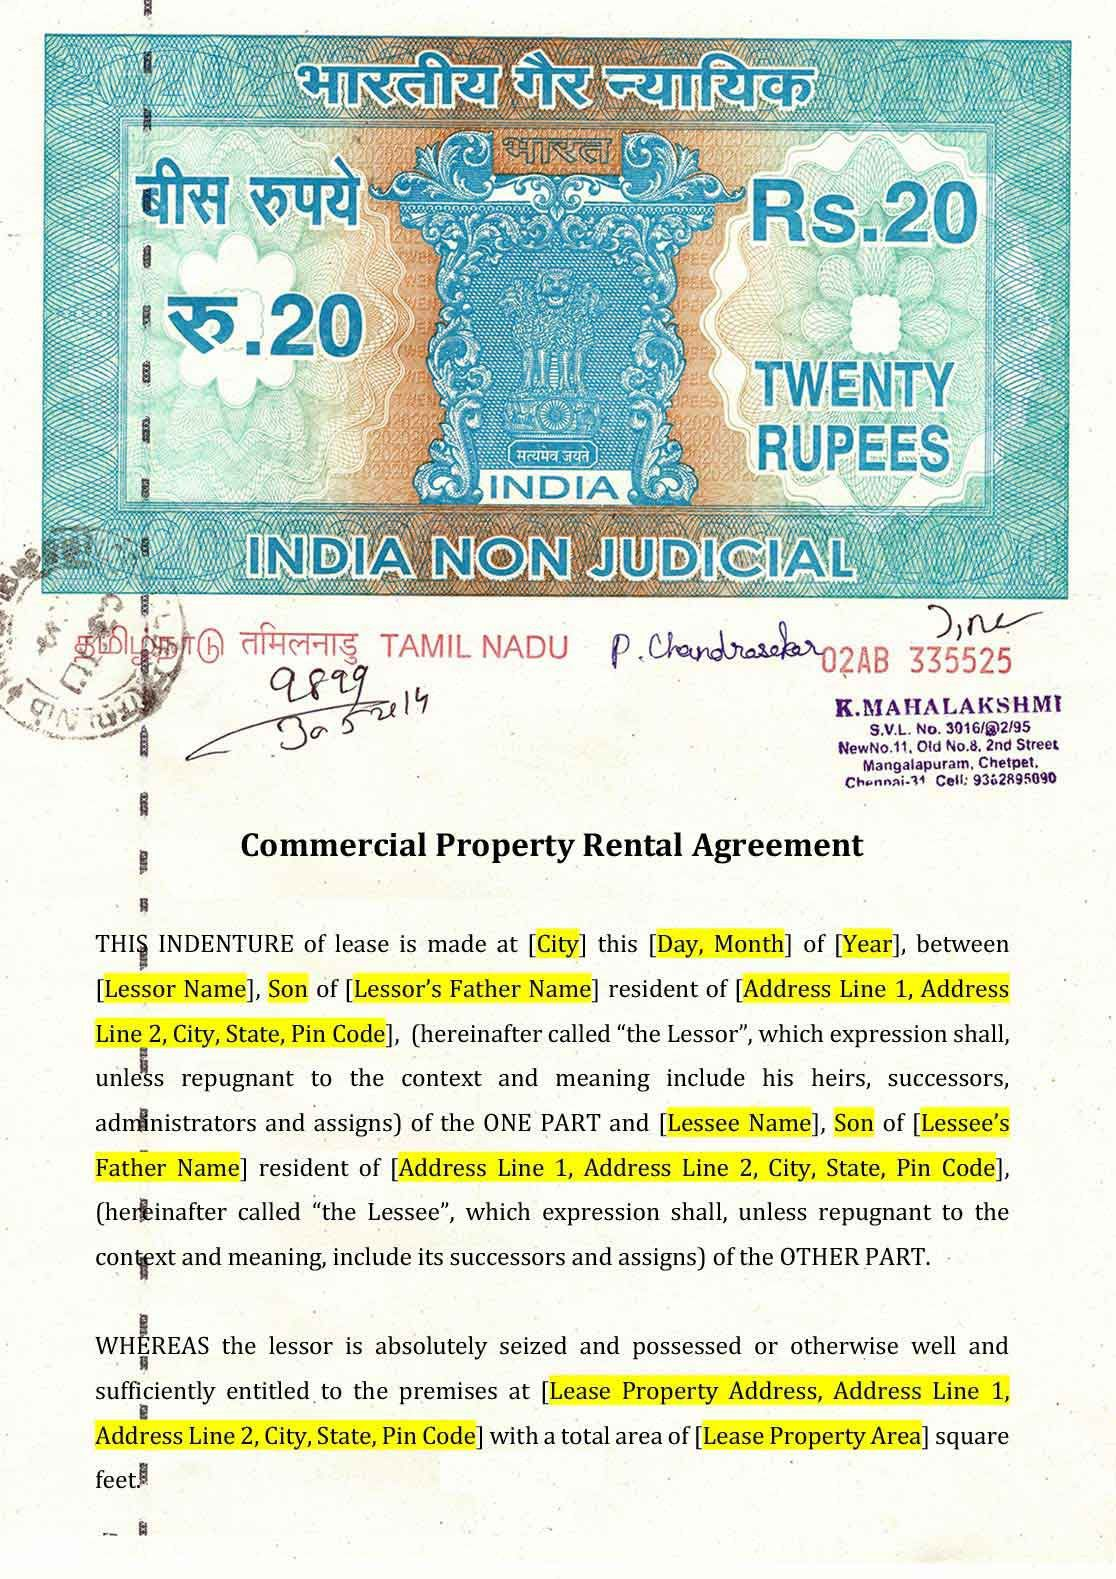 009 Formidable Lease Agreement Template Word India Inspiration  RentalFull